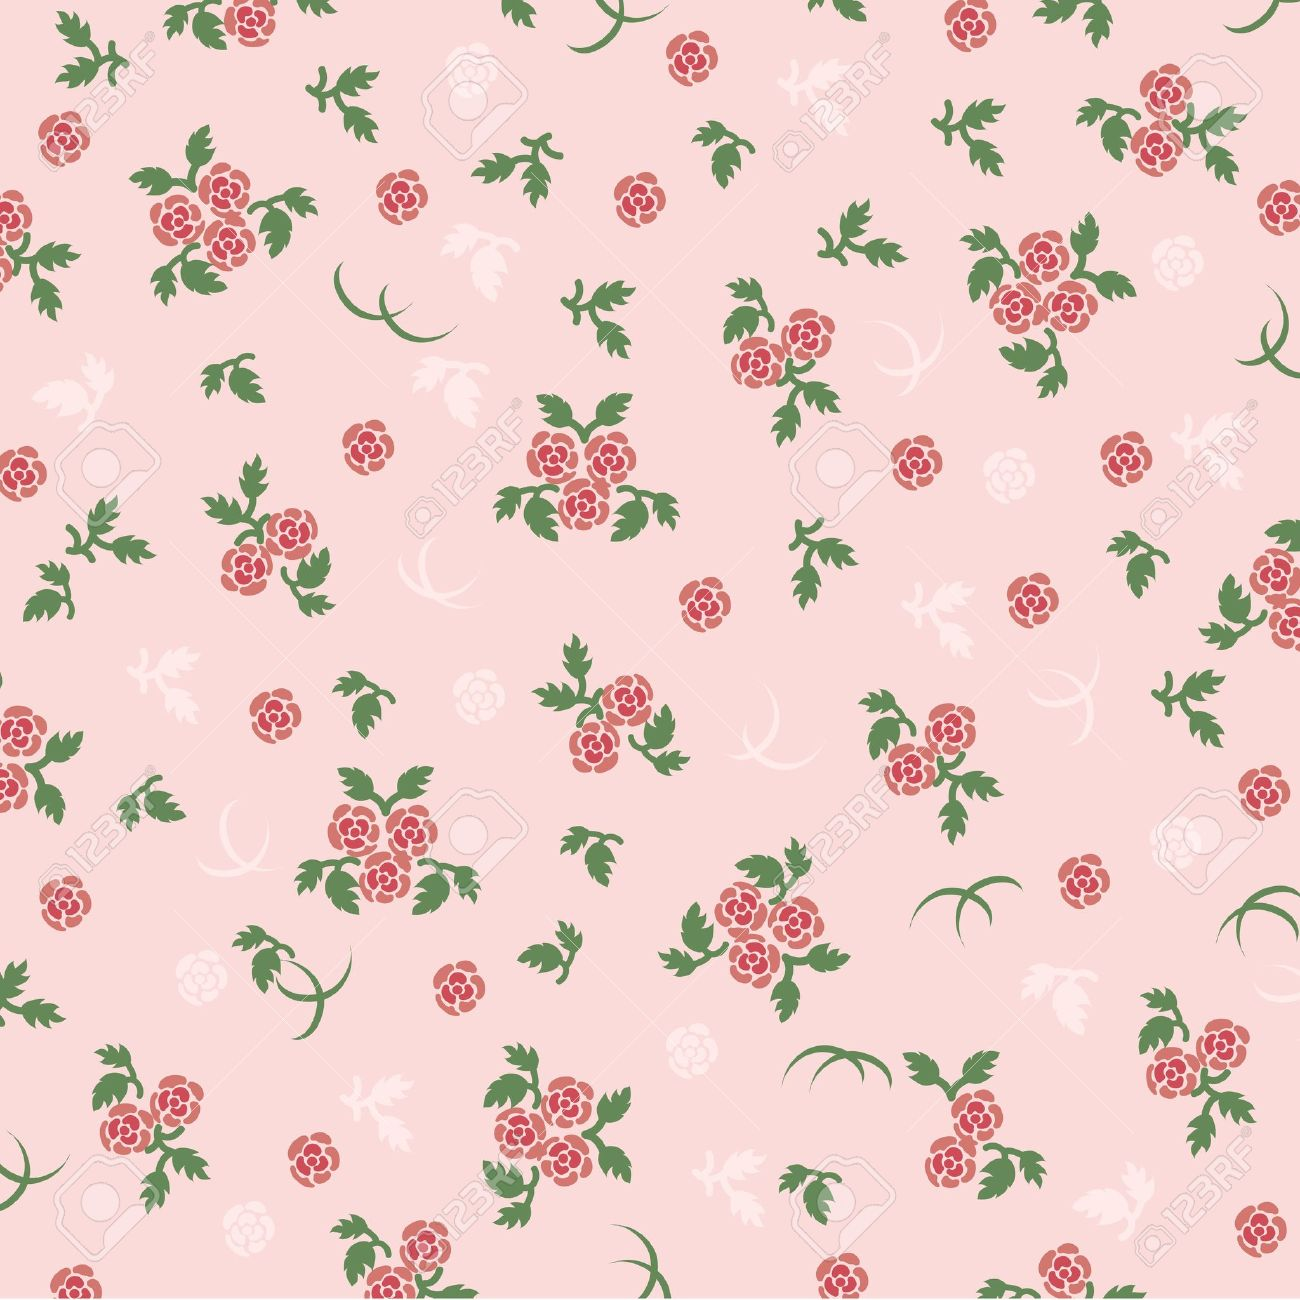 rose background pink royalty free cliparts vectors and stock